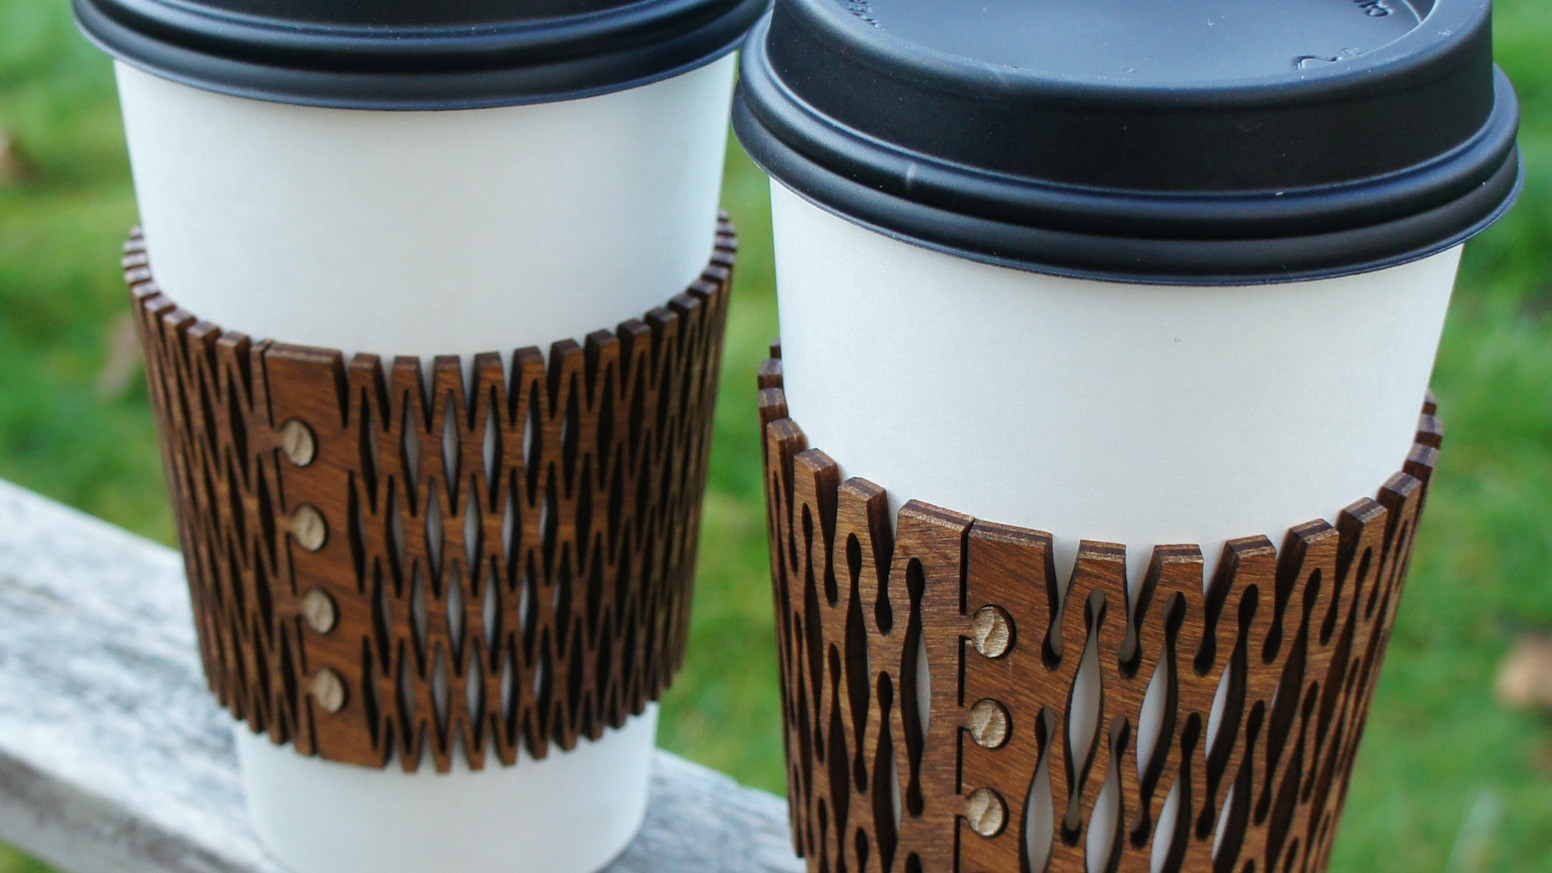 Reusable sleeves for your favorite coffee. Add style and reduce waste on your next trip to the coffee shop.